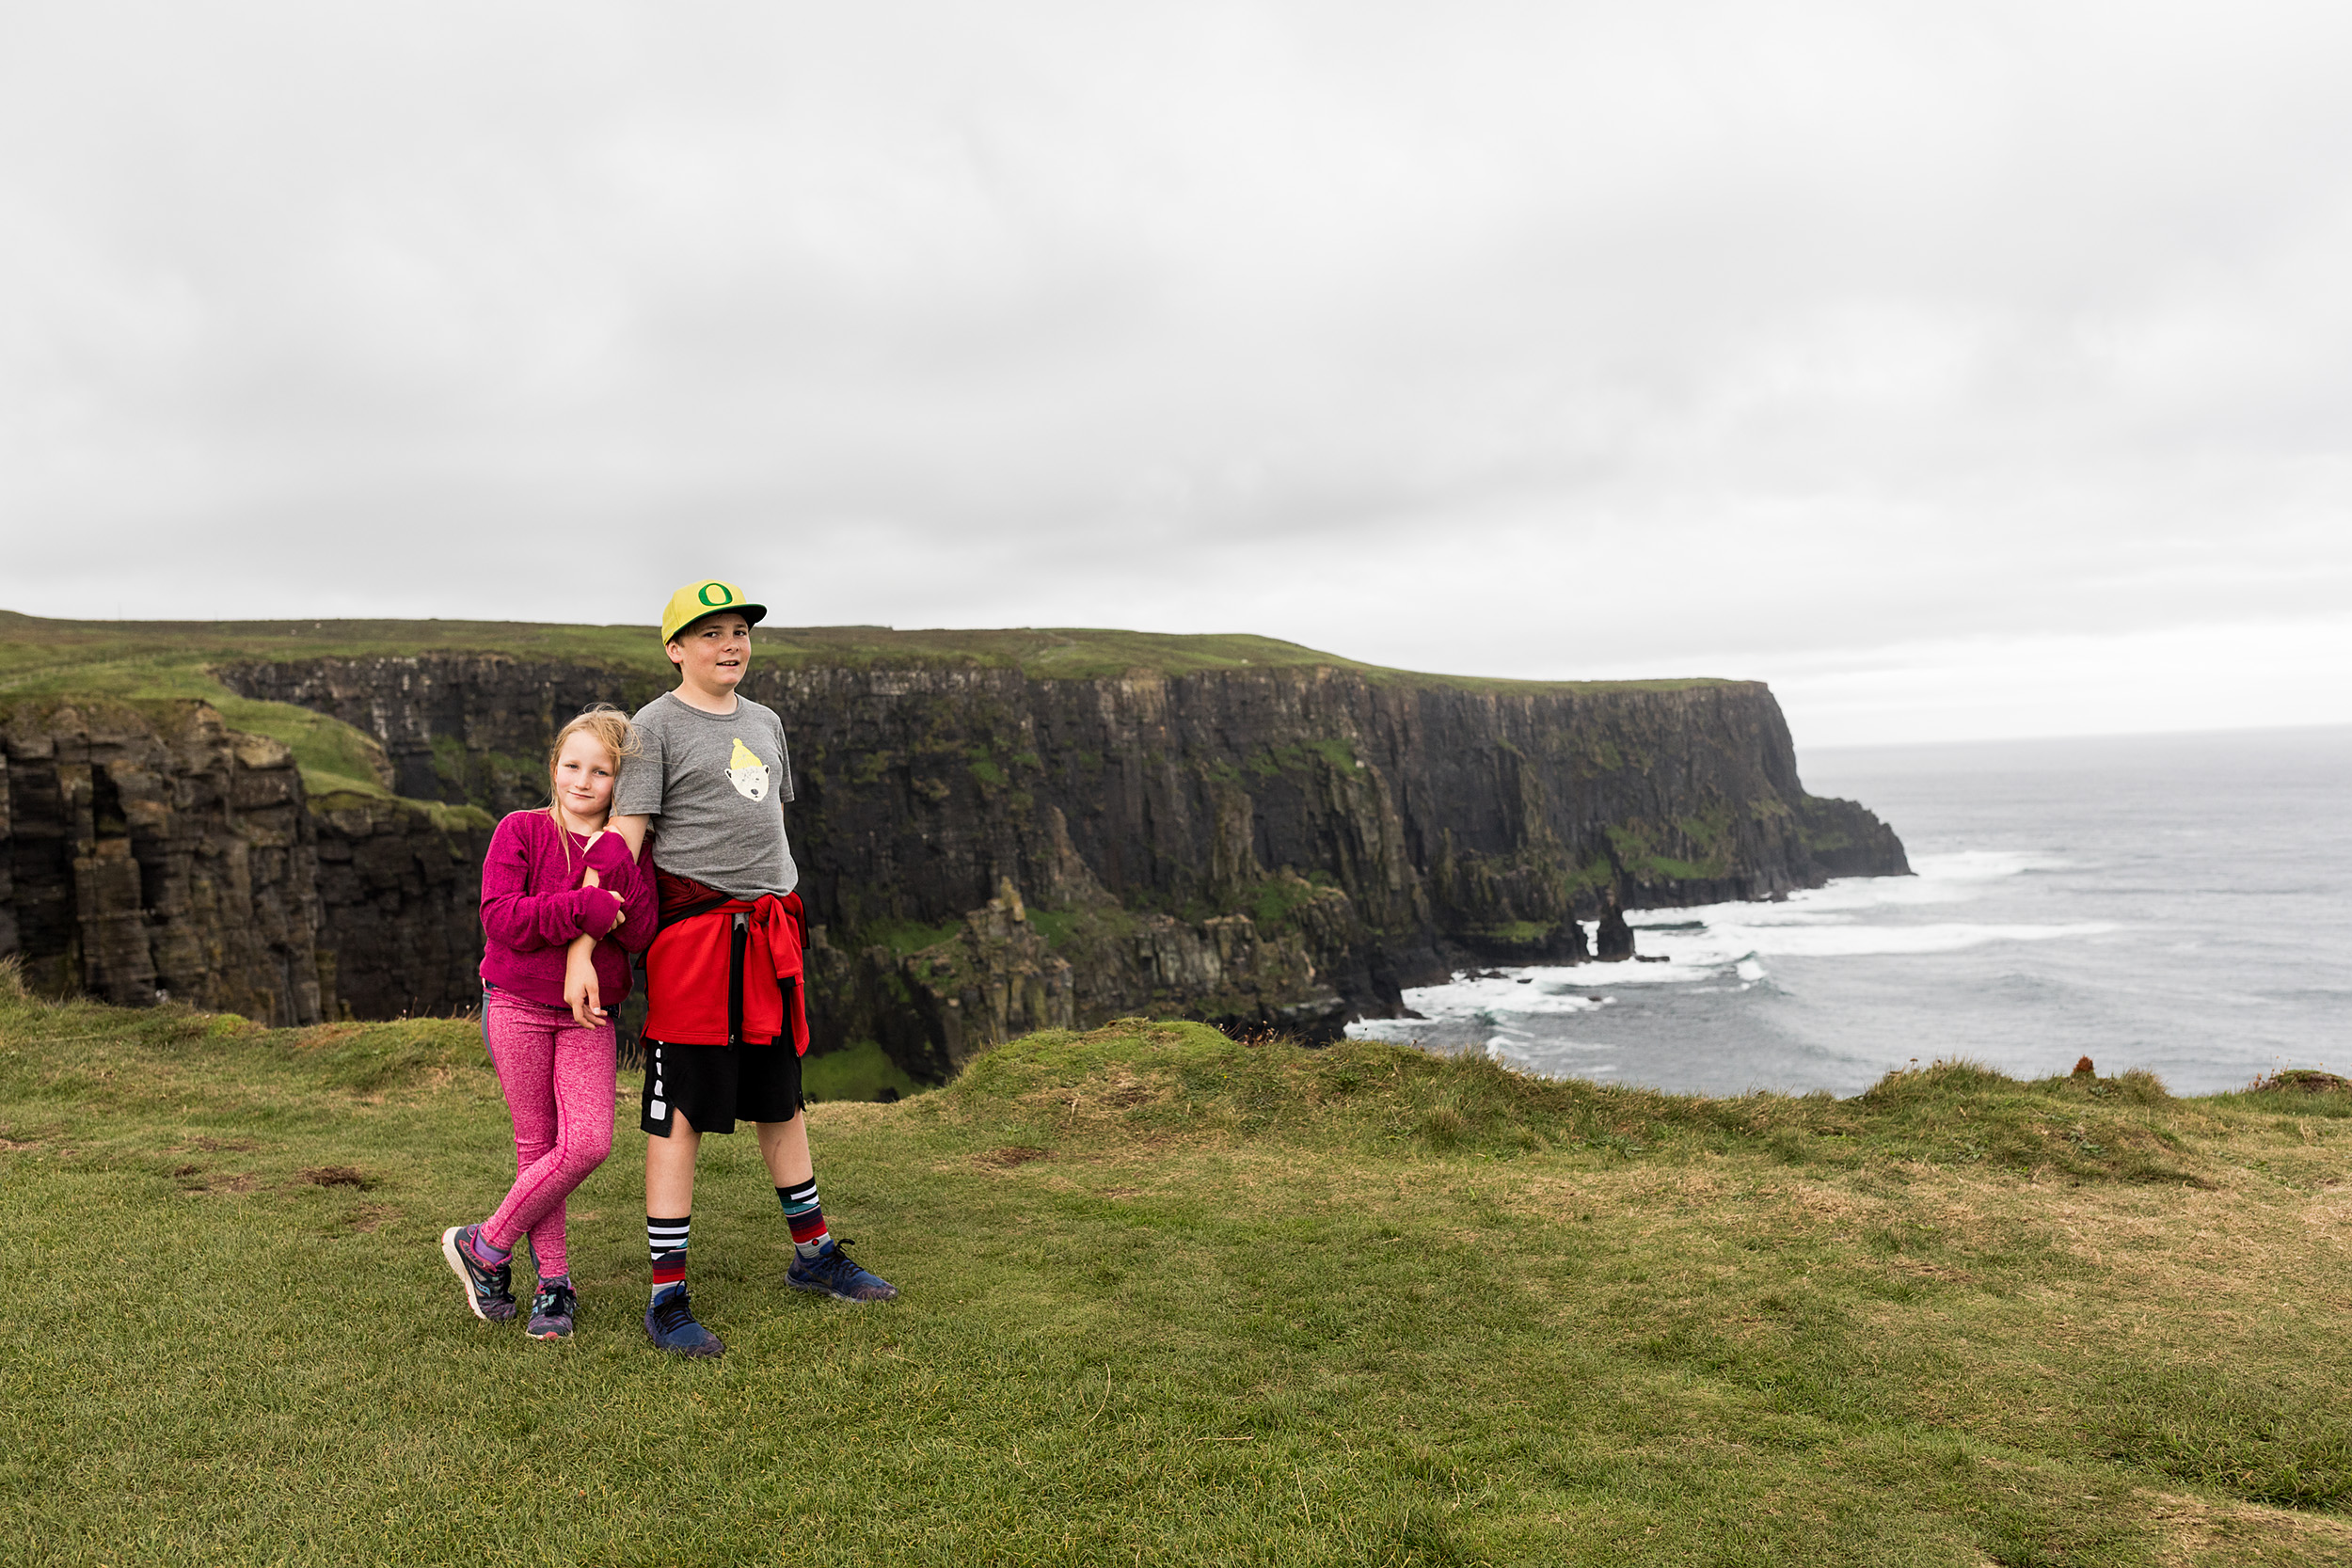 Sister and brother stand on the Cliffs of Moher in Ireland